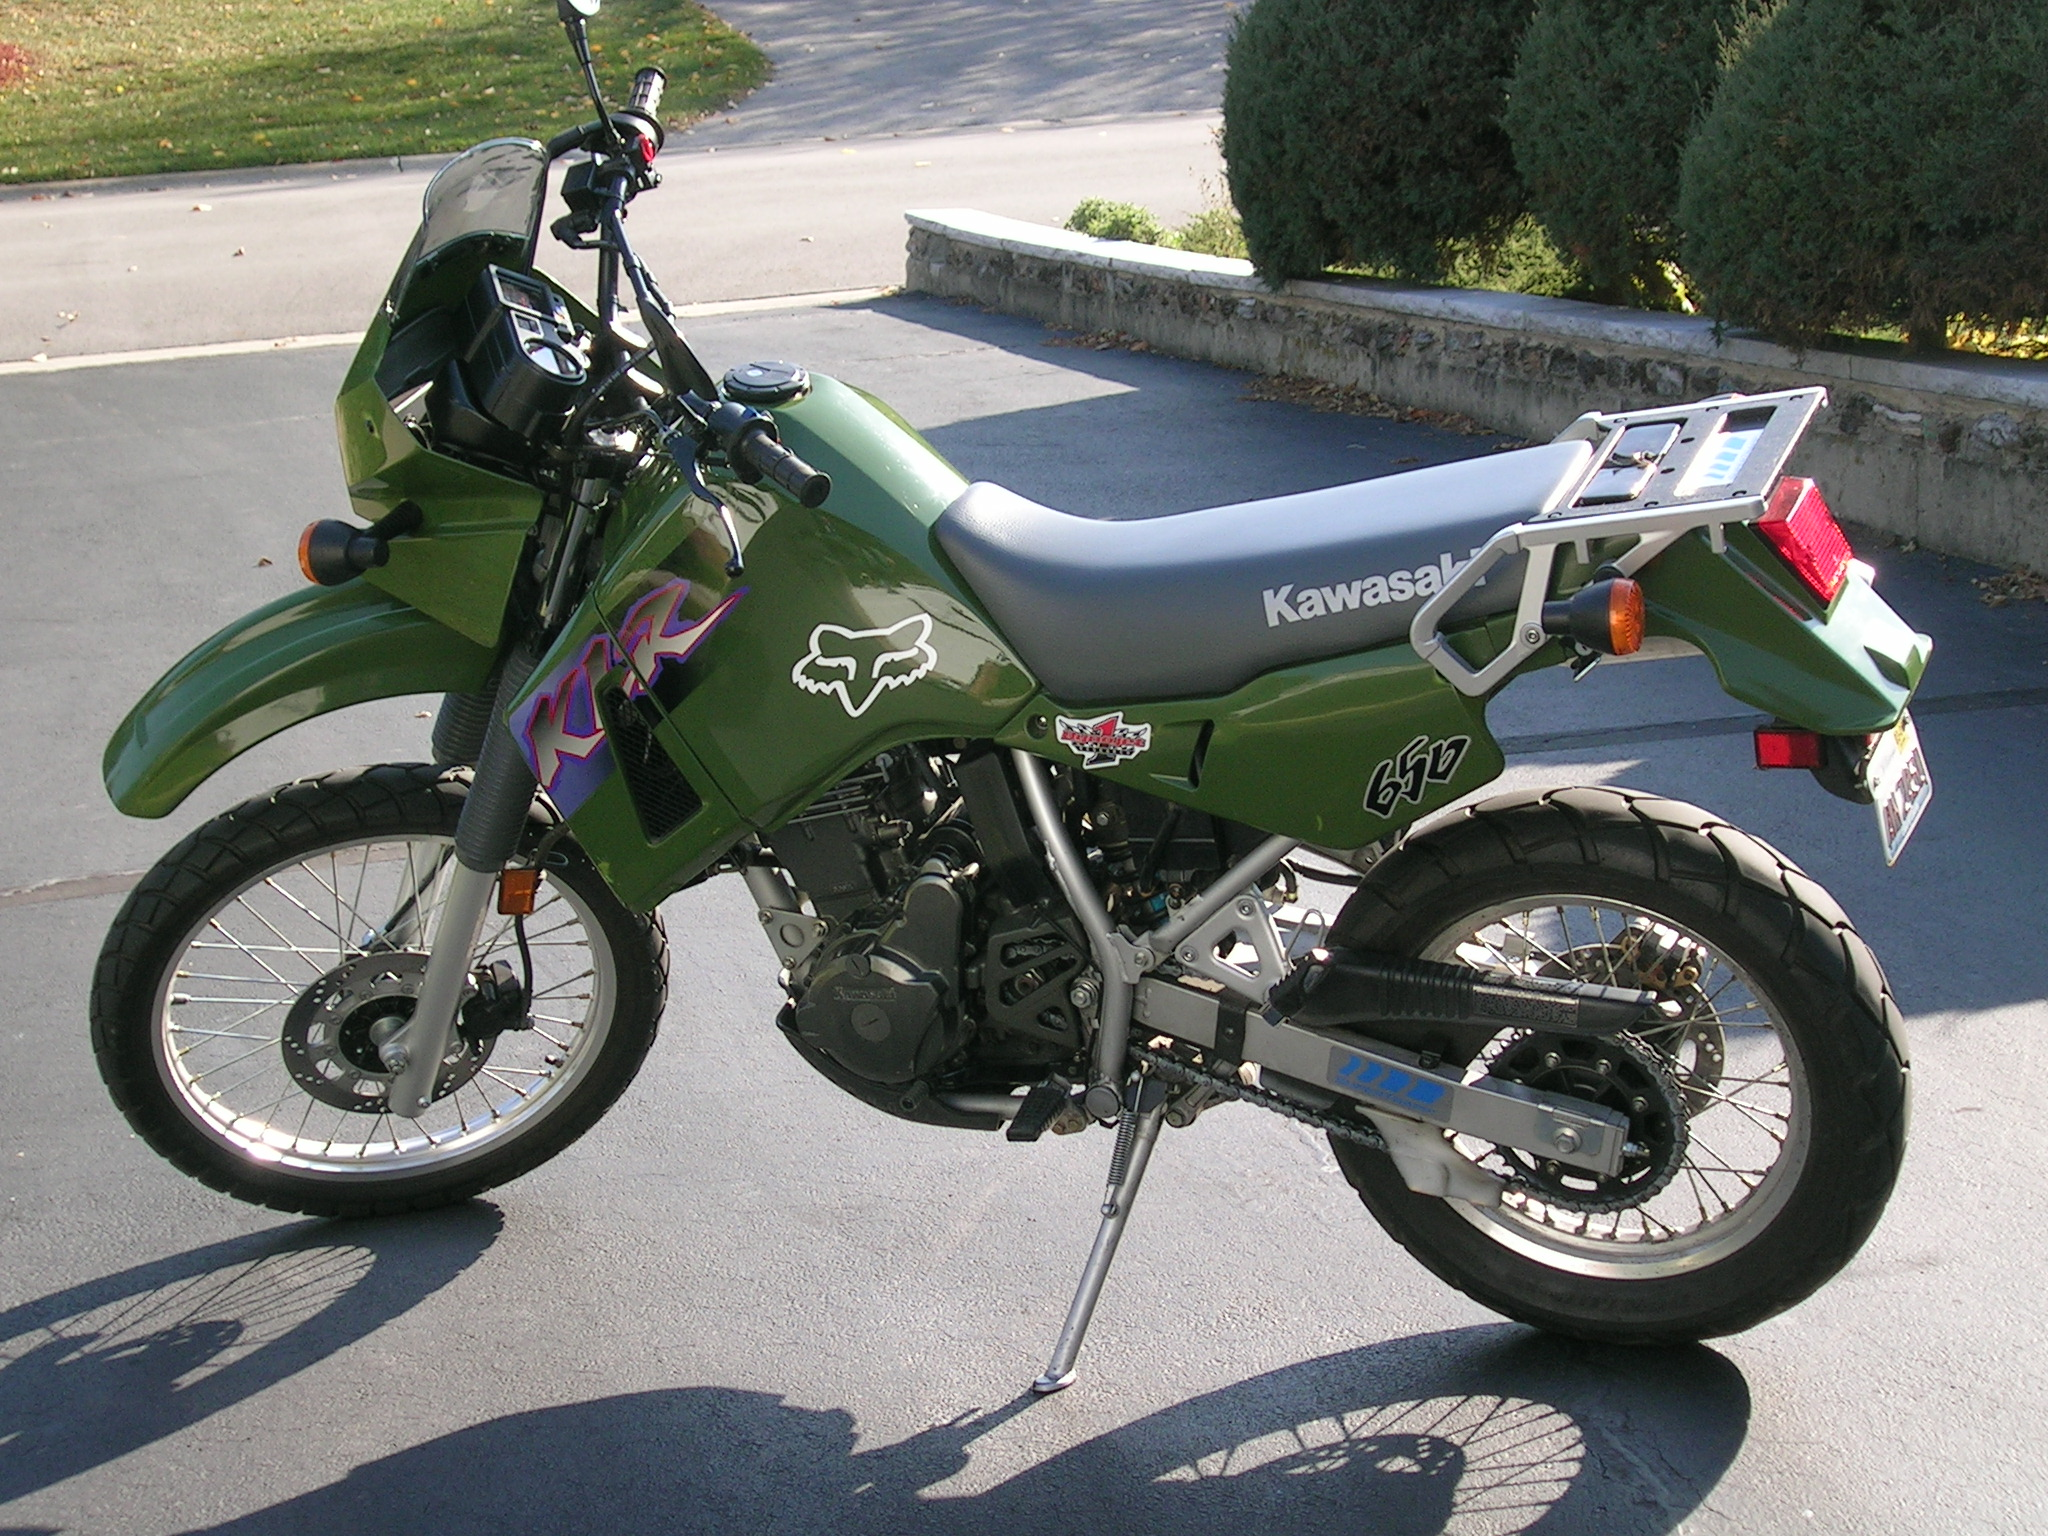 Featured Motorcycle - 2000 Kawasaki KLR 650